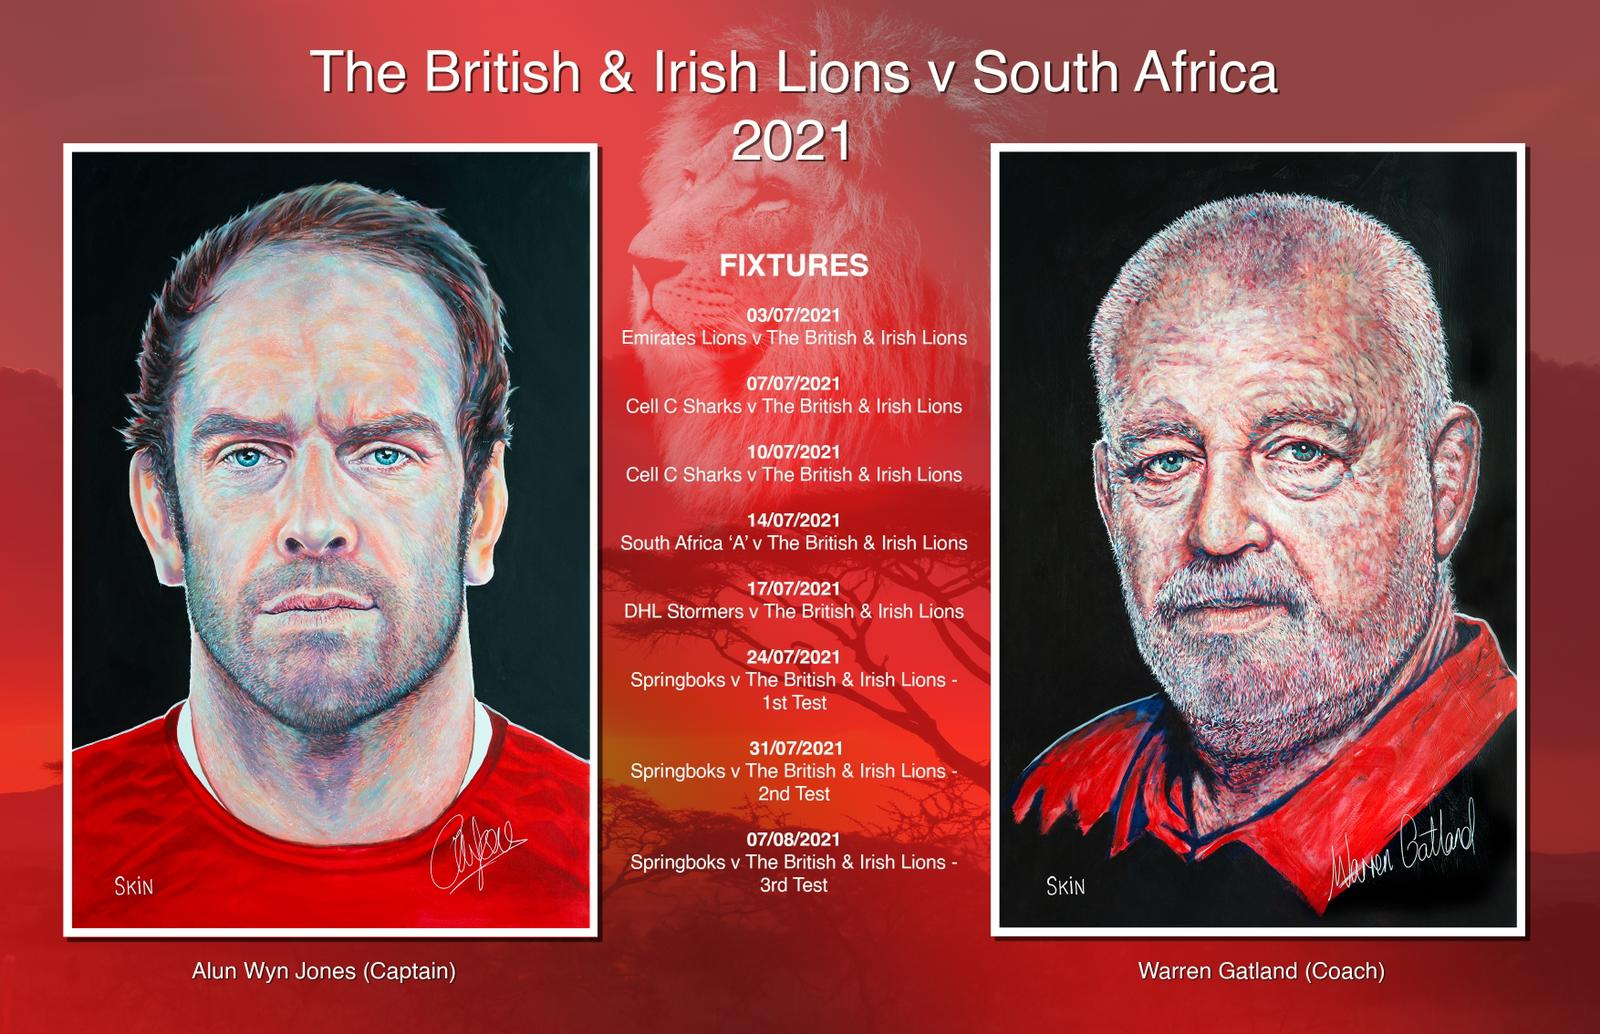 Prostate Cymru are pleased to announce that Welsh artist Art By Skin has painted British and Irish Lions Captain, Alun Wyn Jones, and Coach, Warren Gatland, to help raise money for Prostate Cymru.